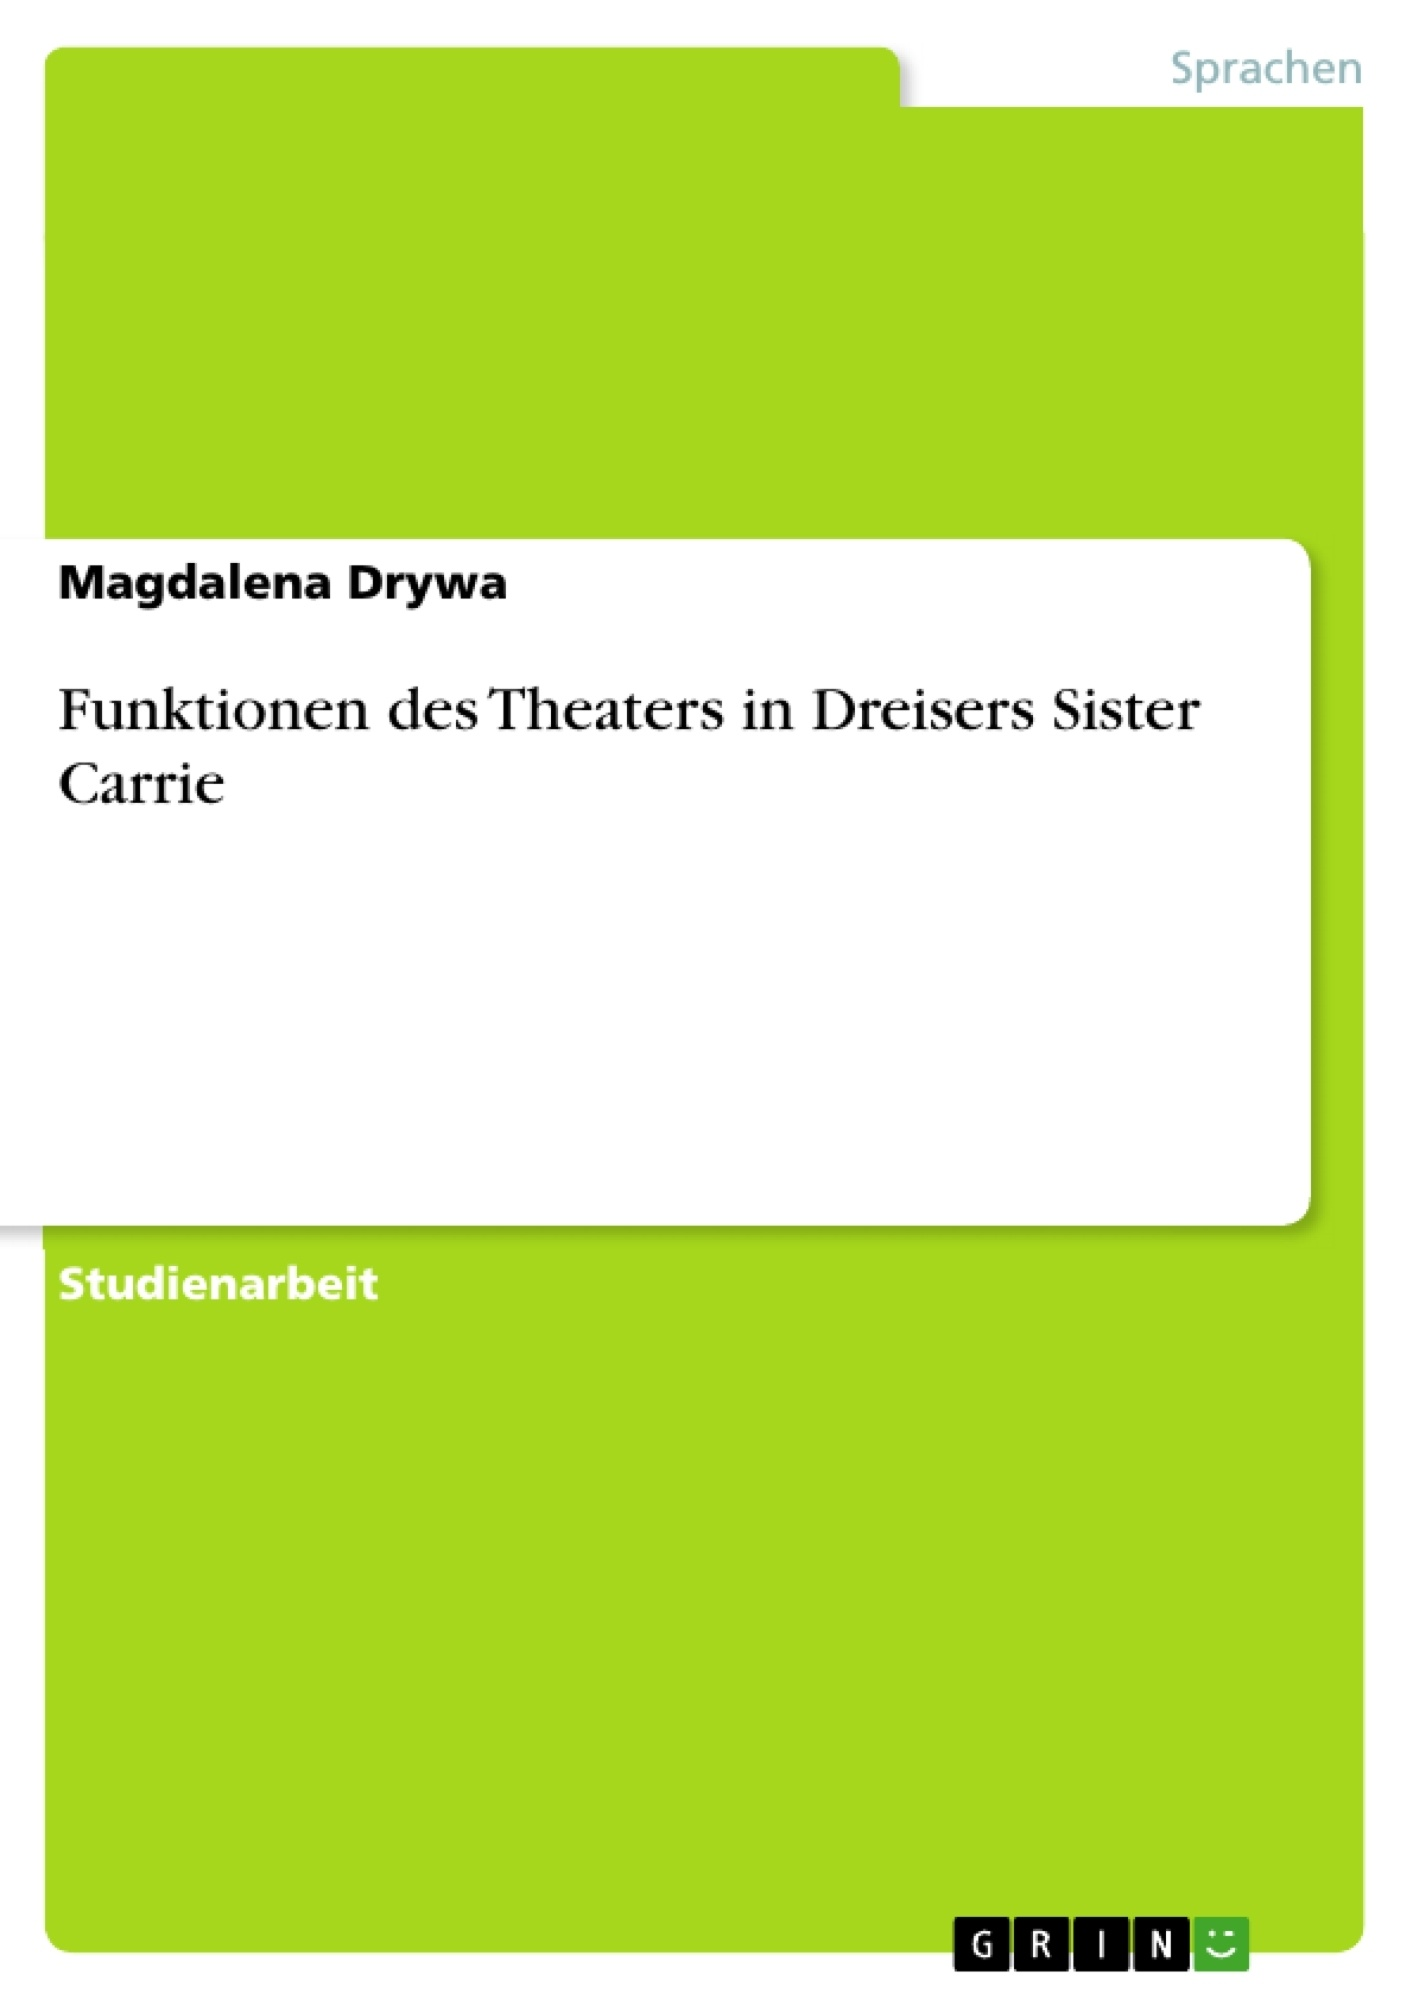 How is Theodore Dreiser's Sister Carrie chapter 1 and 3 analyzed from a feminist perspective?